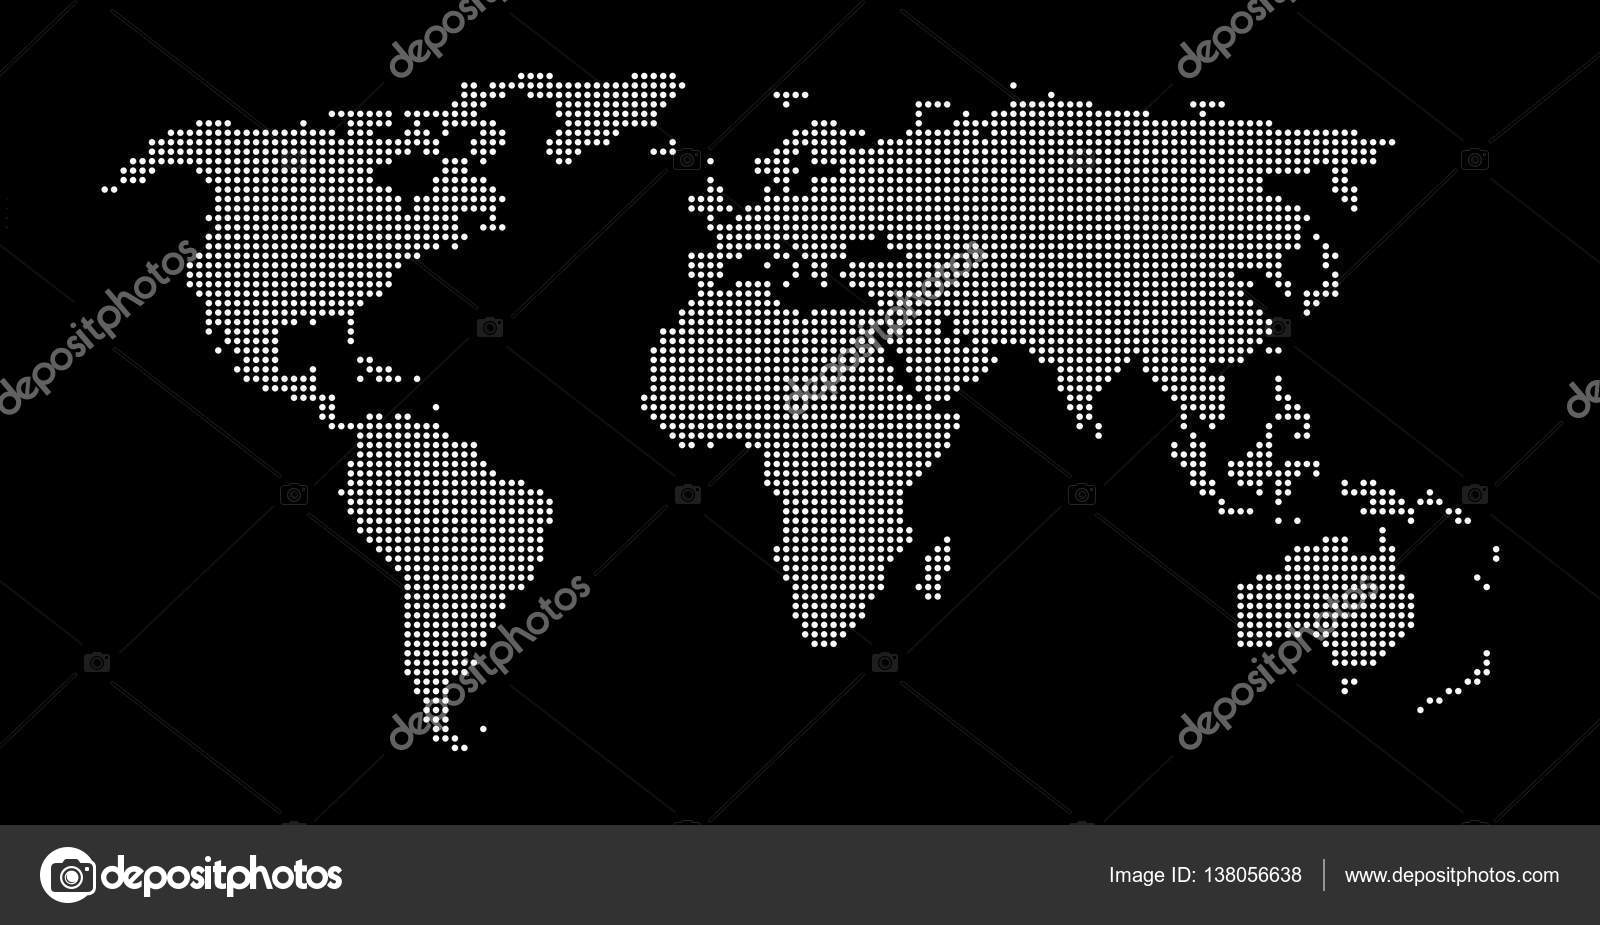 Black white dotted world map background stock photo keport modern dotted world map background black and white photo by keport gumiabroncs Gallery